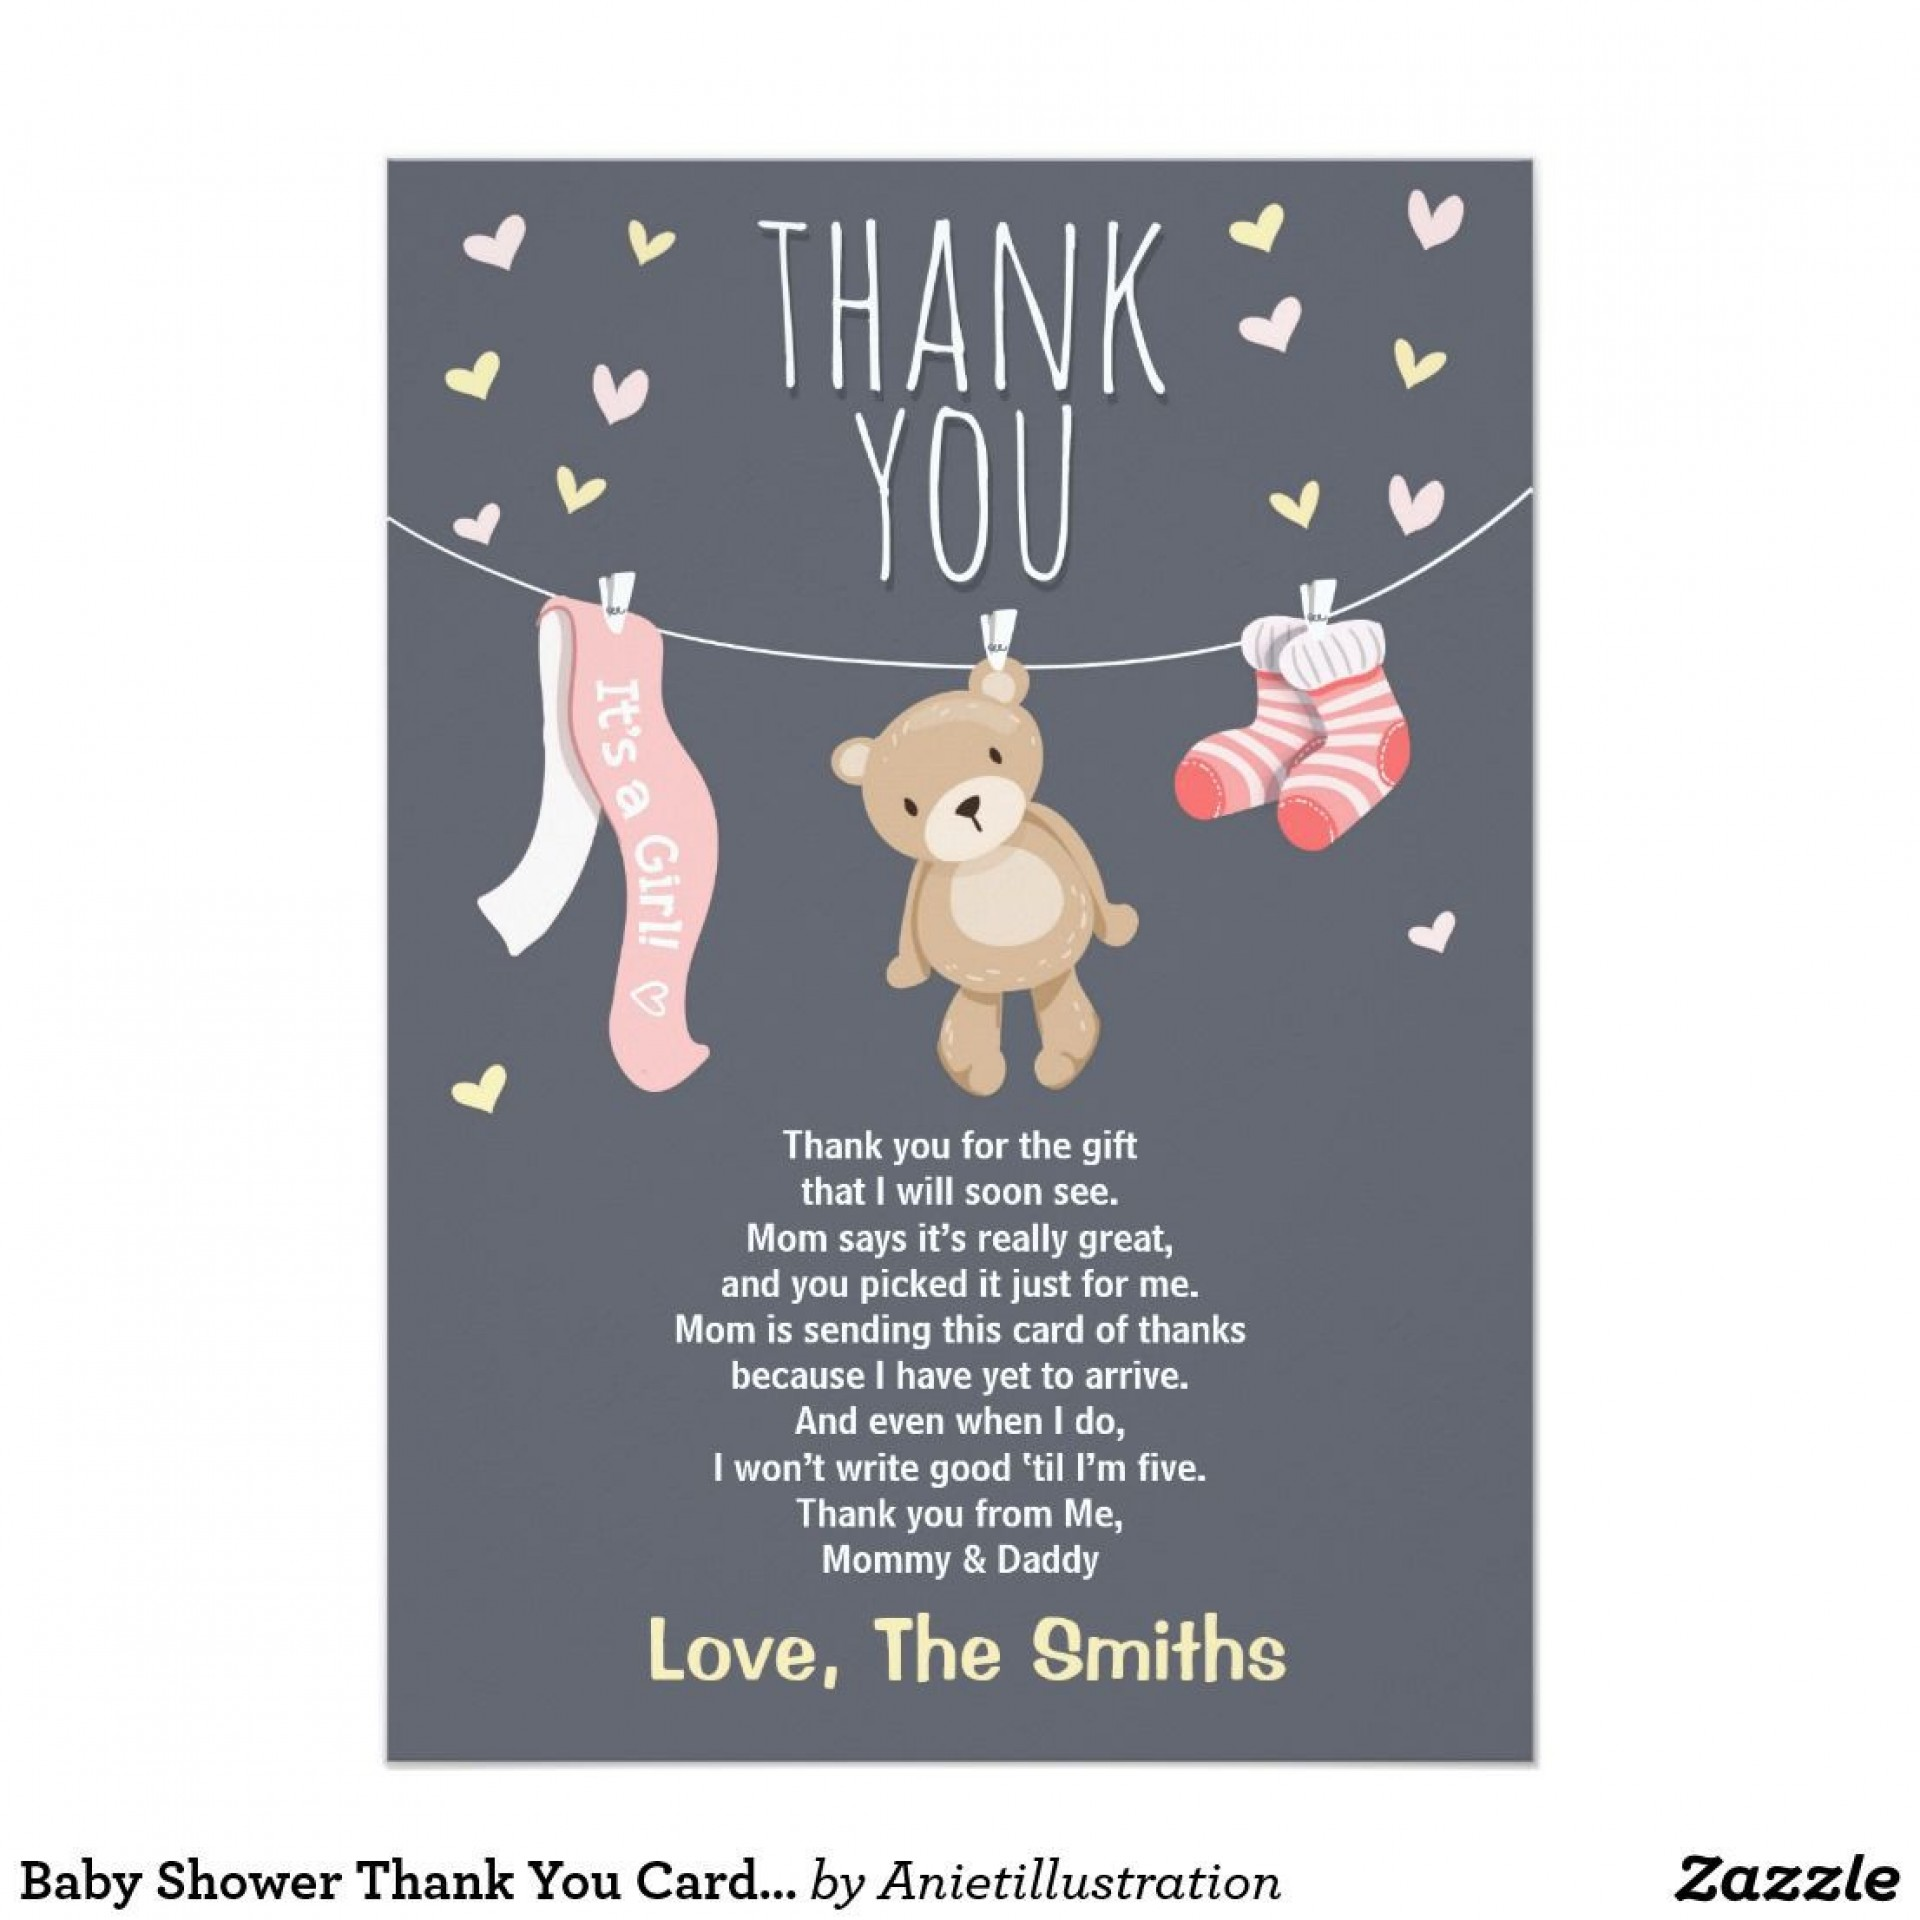 004 Astounding Thank You Card Wording Baby Shower Gift High Resolution  For Multiple Group1920